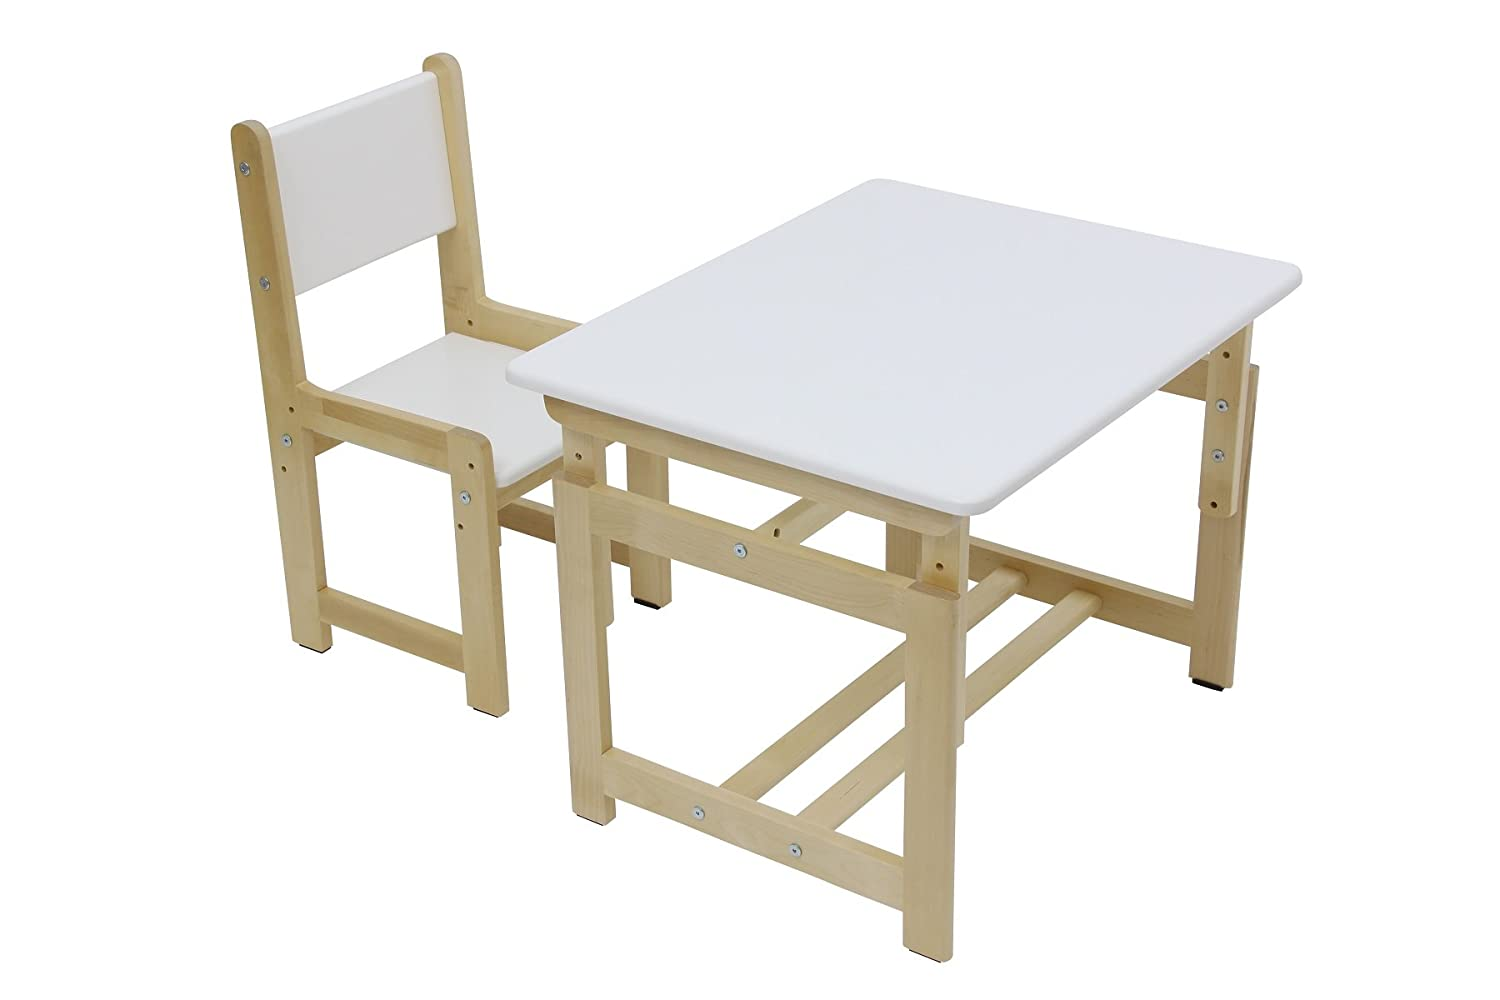 Children's Table and Chair Set, Polini Kids Eco 400 SM Wood Model, 3051 Polini-Kids